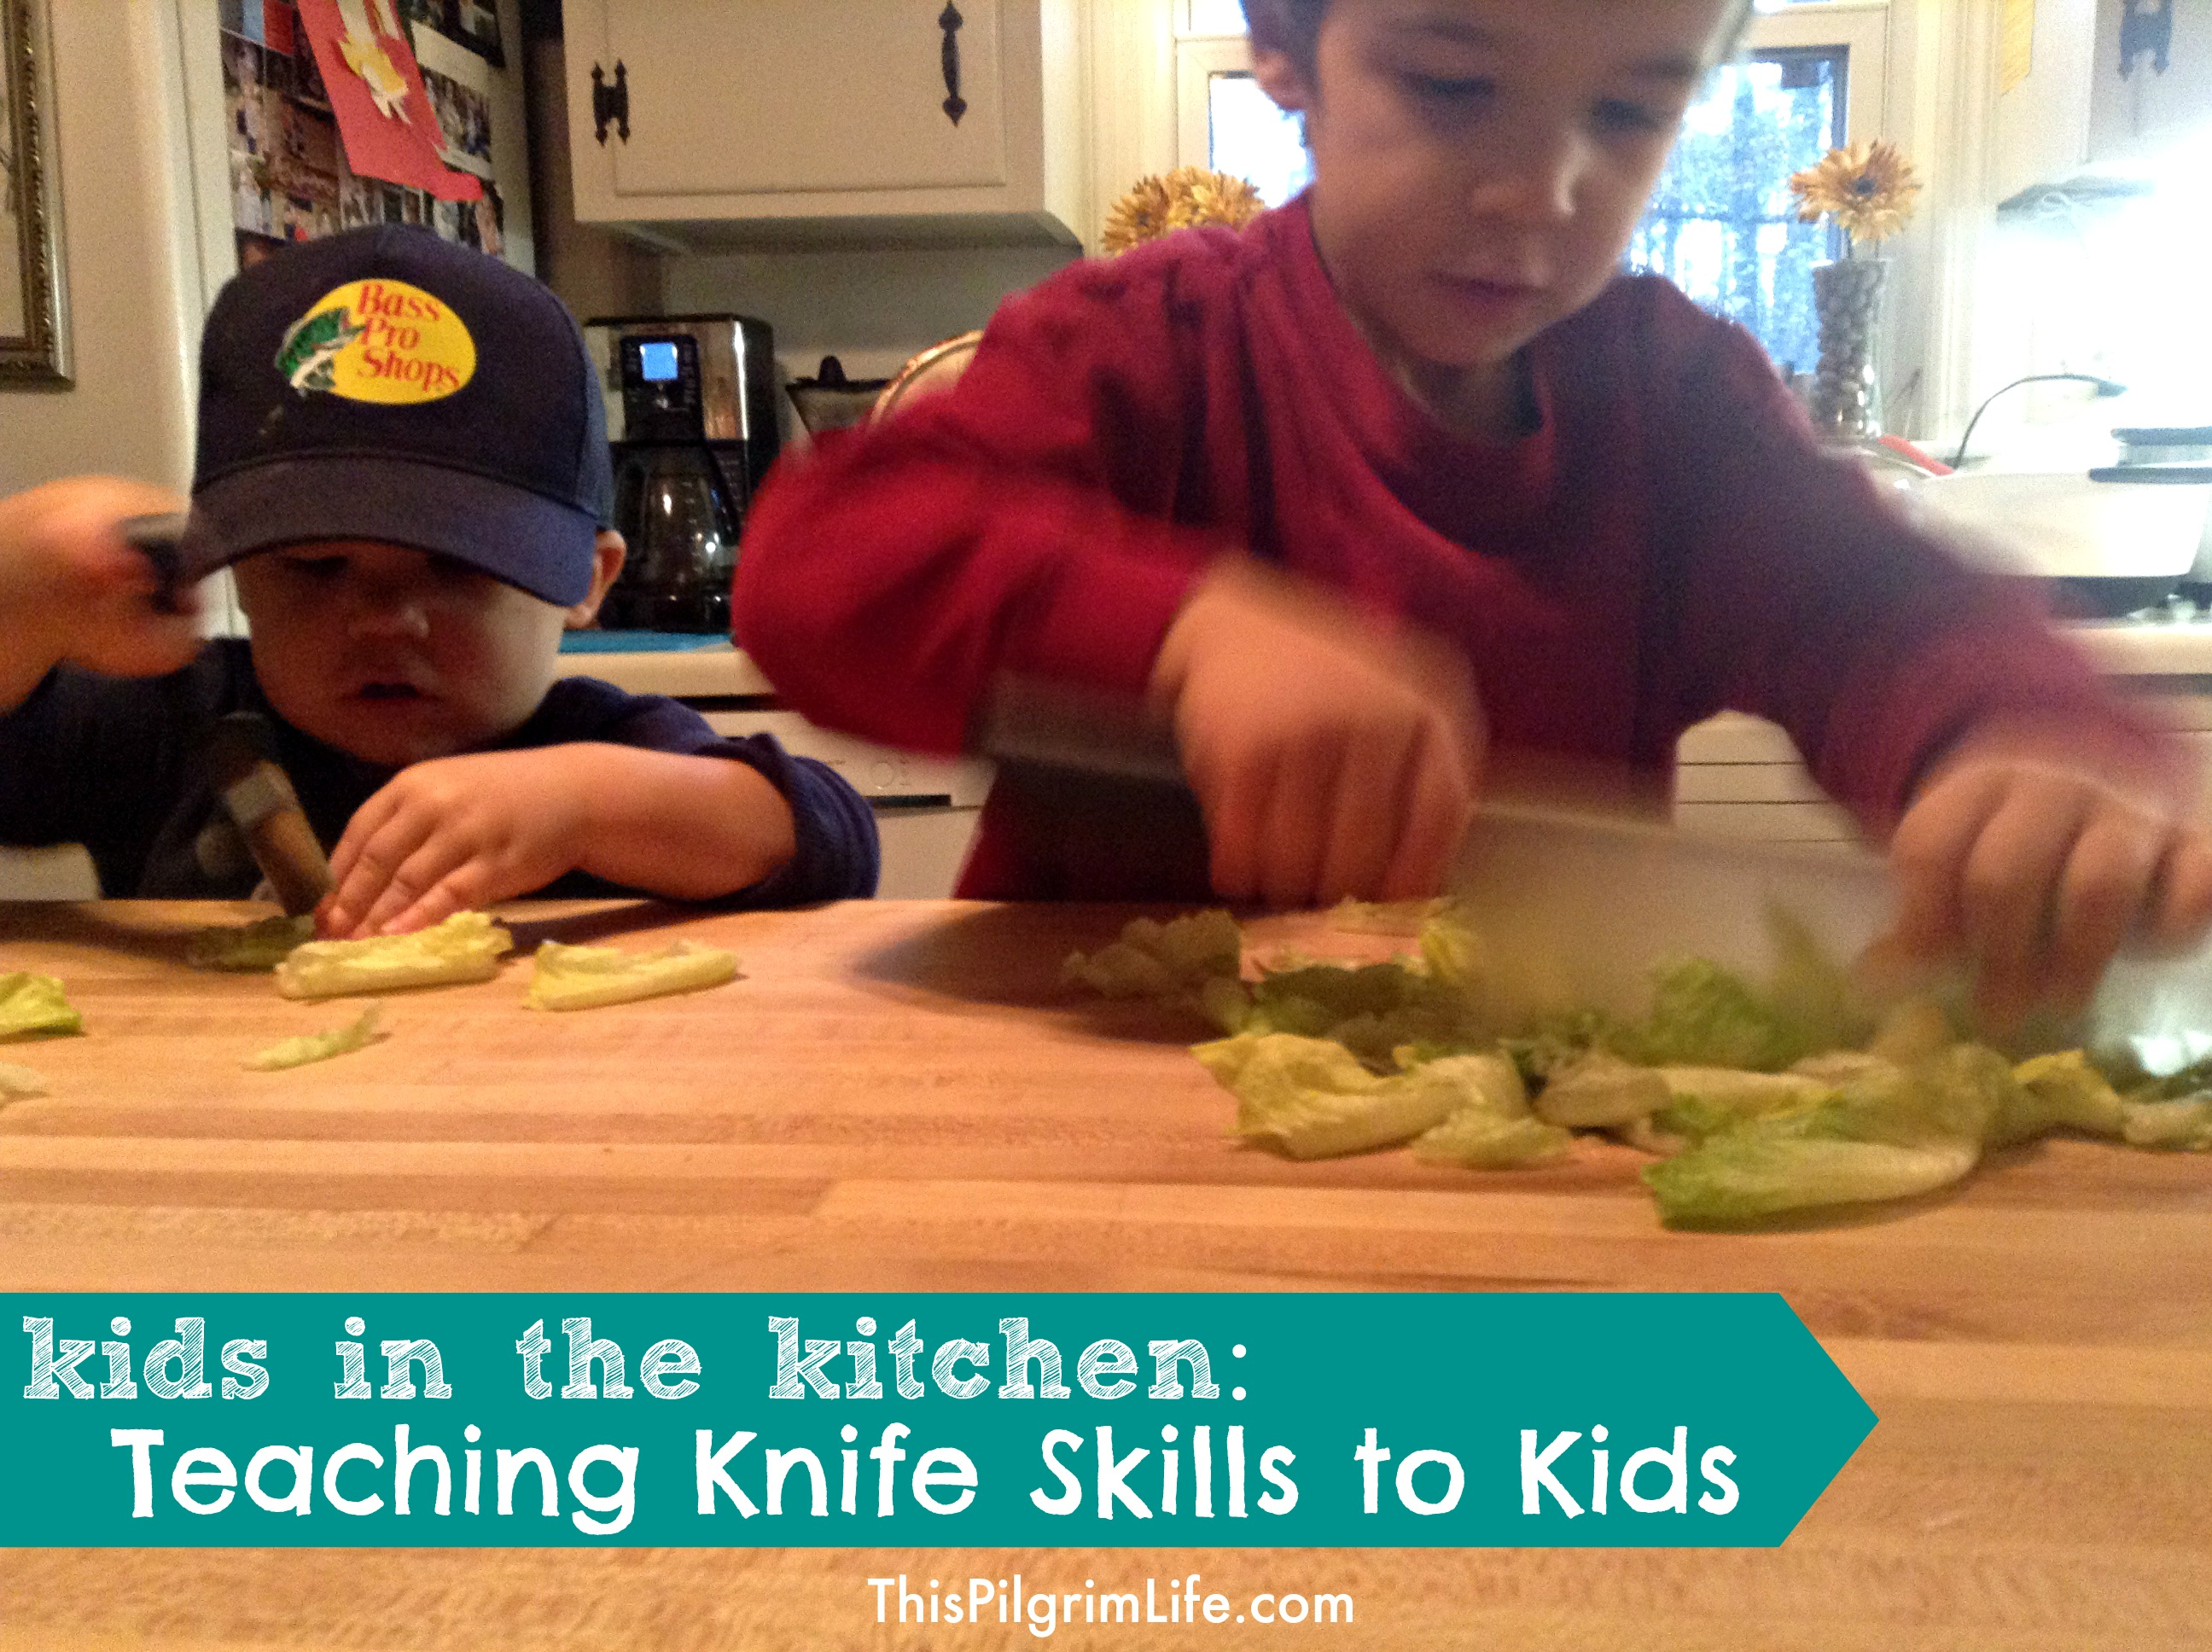 Teaching Knife Skills to Kids When What & How This Pilgrim Life